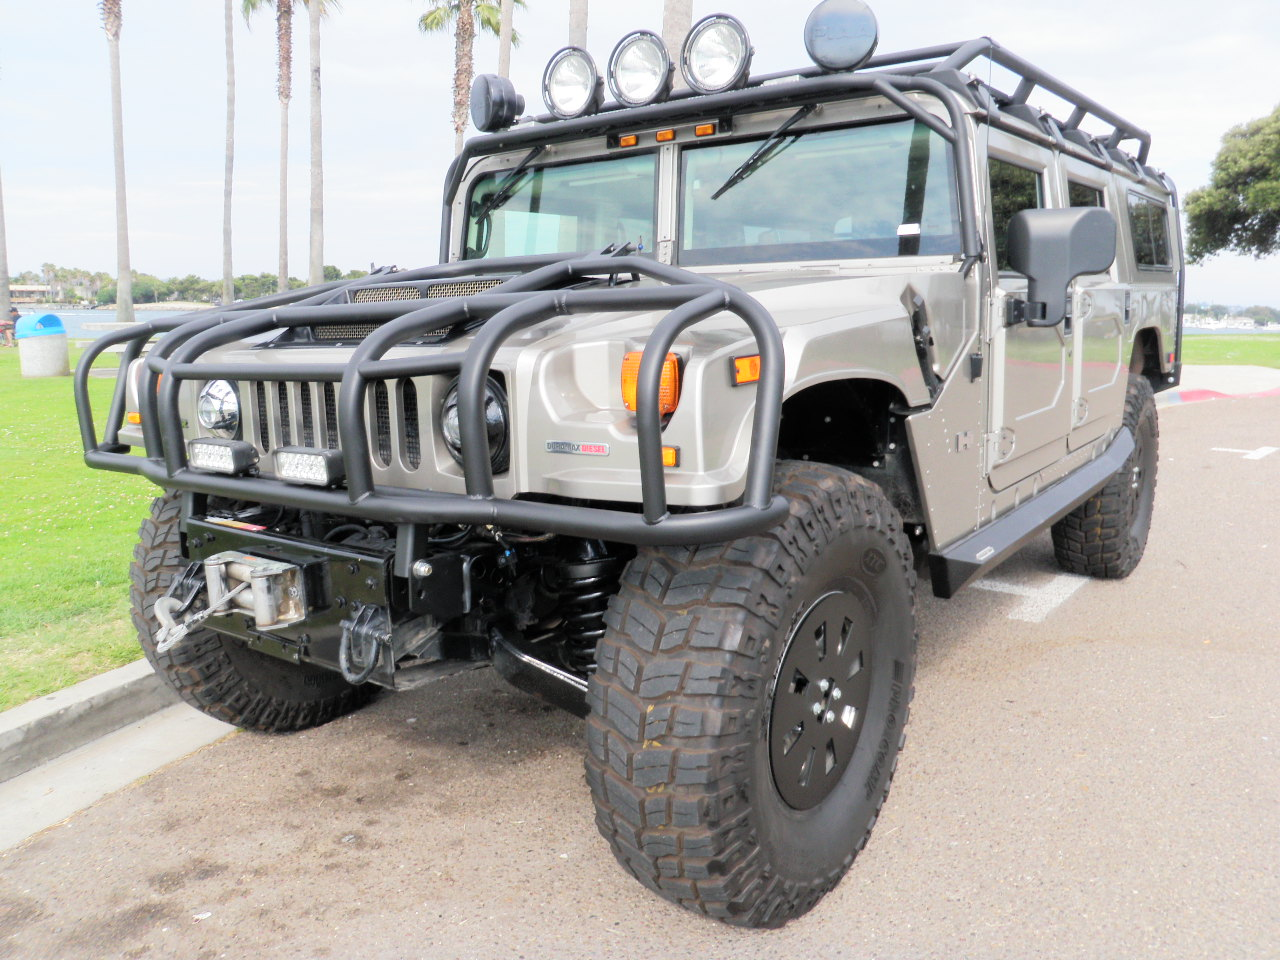 2006 Predator Hummer H1 Alpha Search And Rescue Wagon 9k